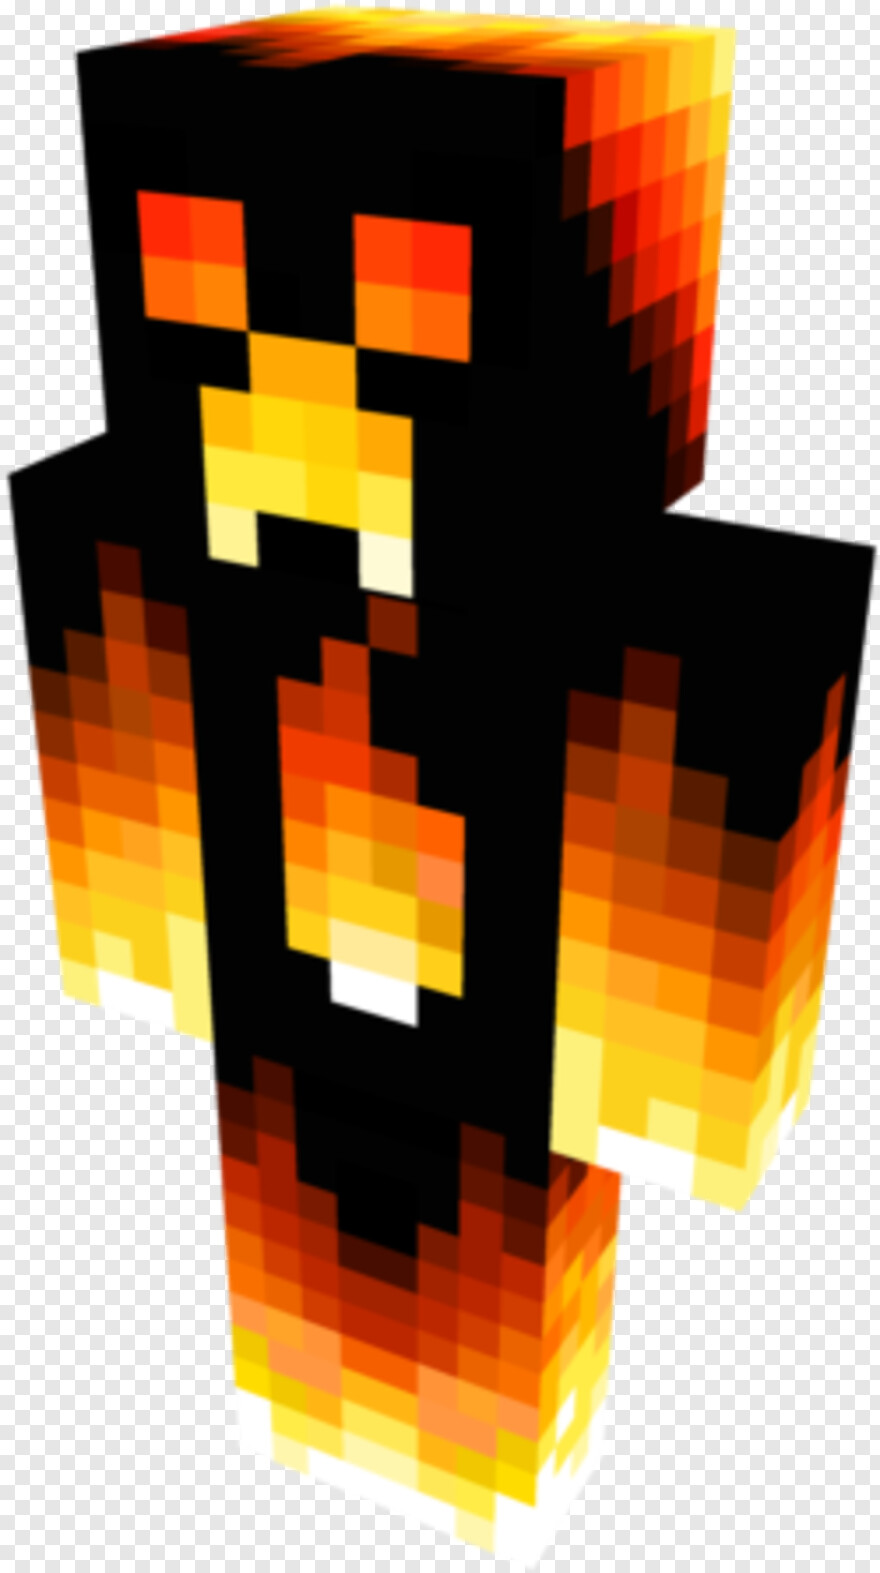 Minecraft Skins Cool Minecraft Skins Creeper Hd Png Download 274x449 4426072 Png Image Pngjoy